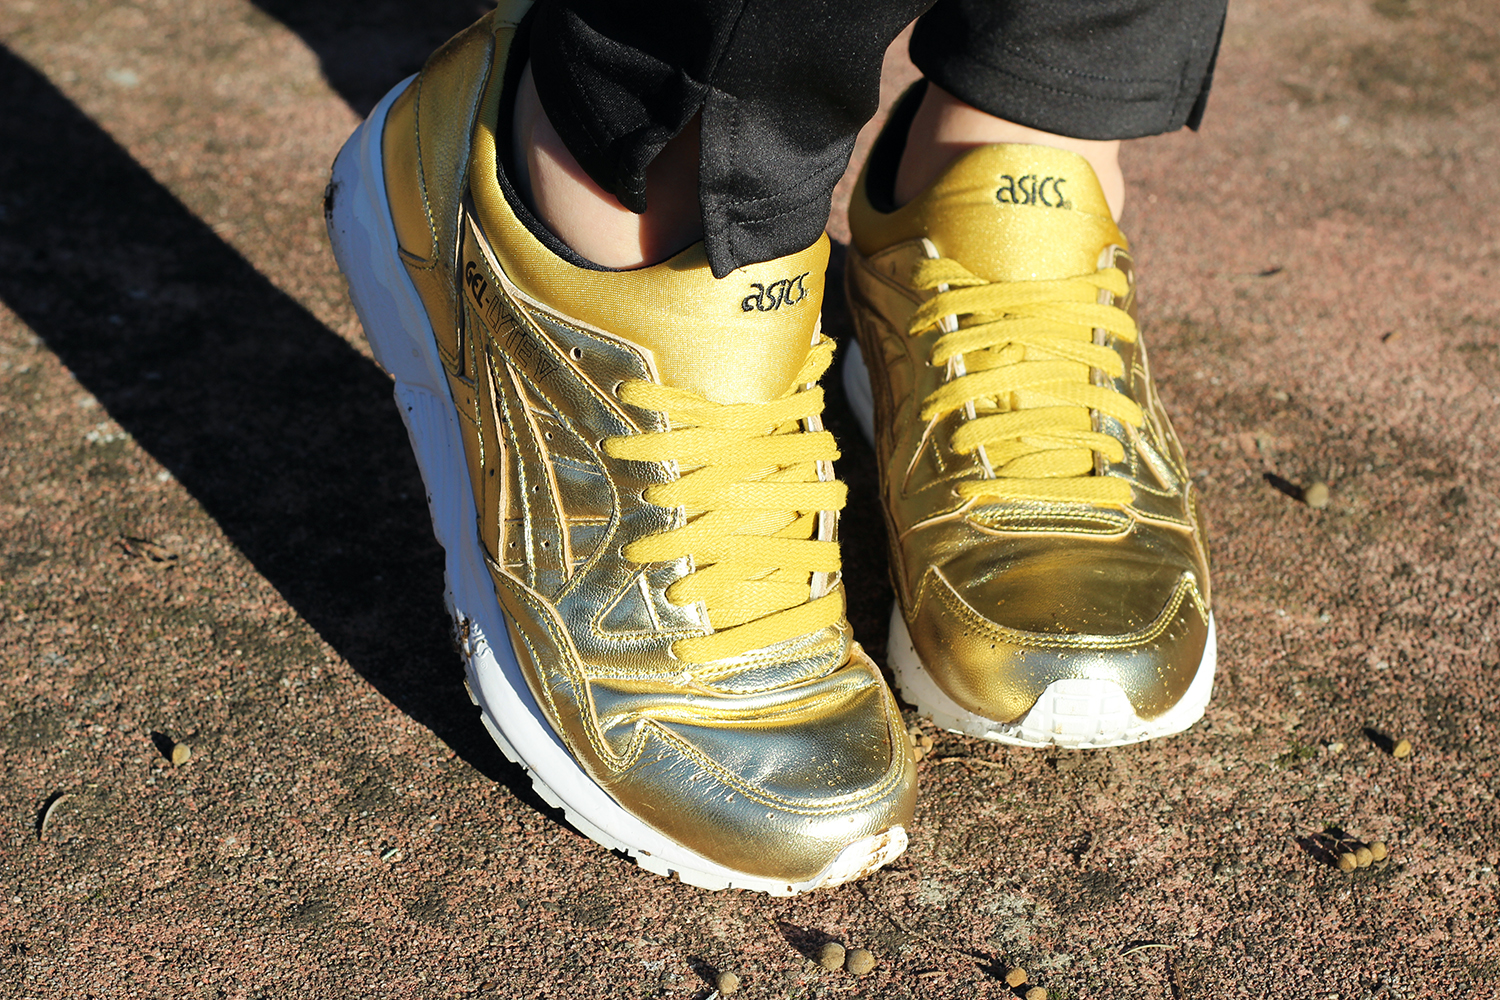 ASICS TIGER GEL LYTE V TOTAL GOLD - SCARPE ORO 2